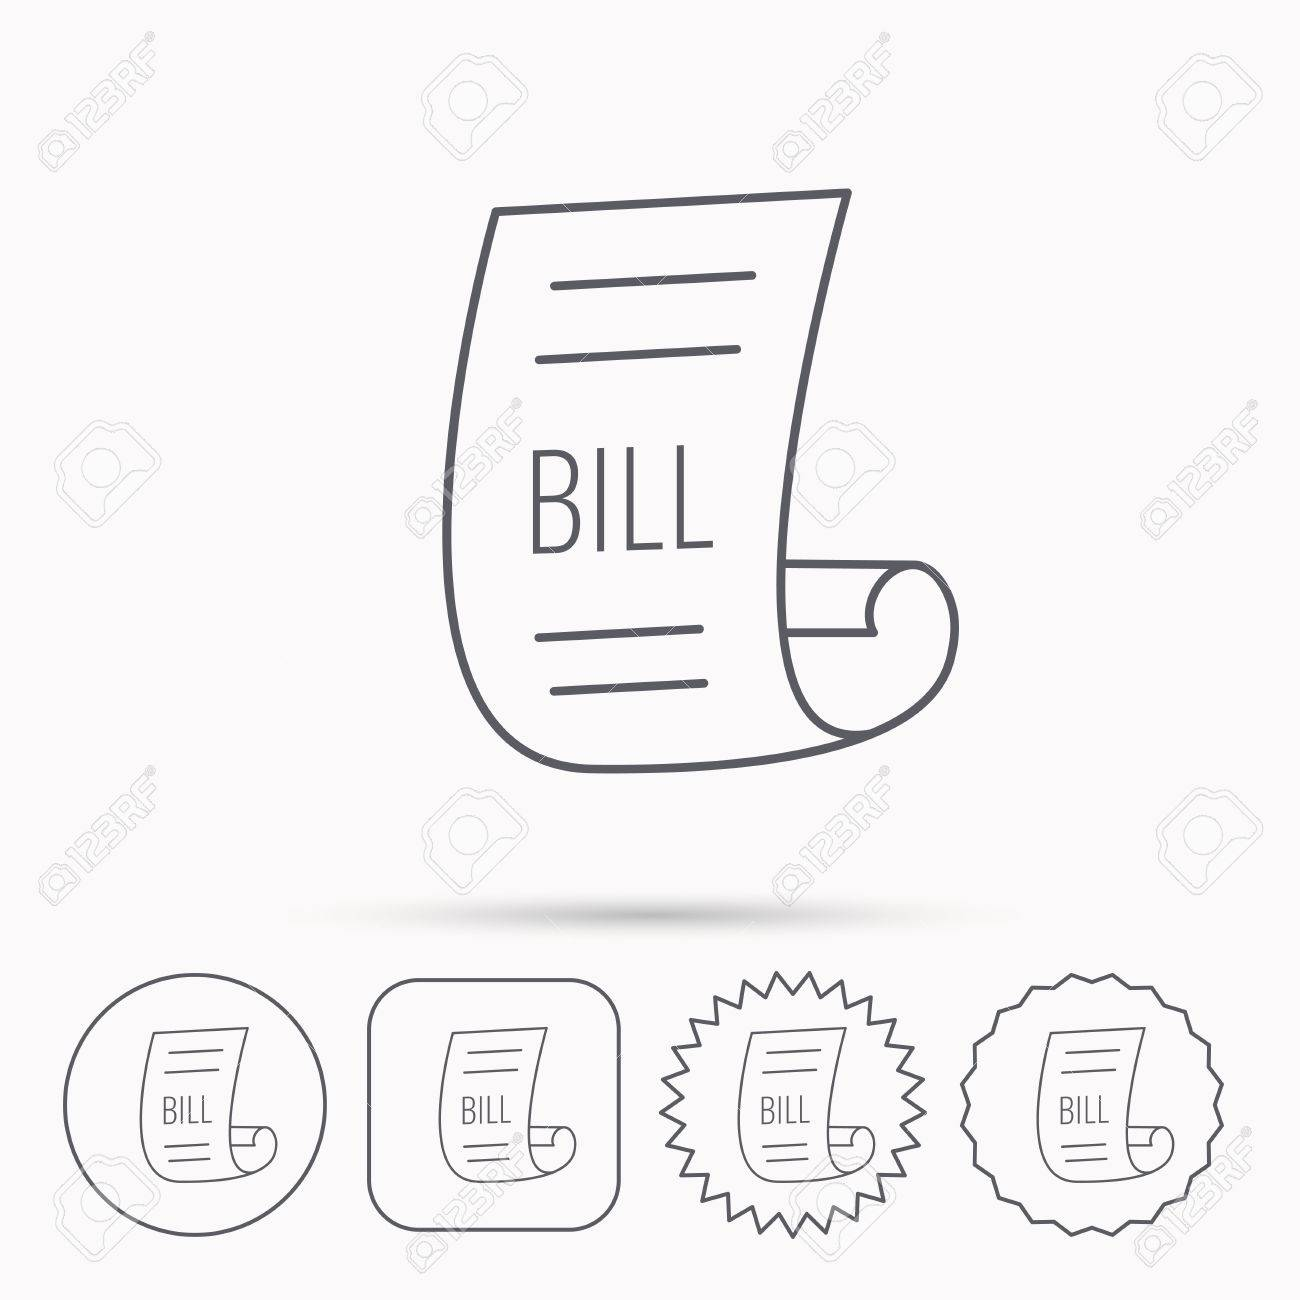 bill icon pay document sign business invoice or receipt symbol